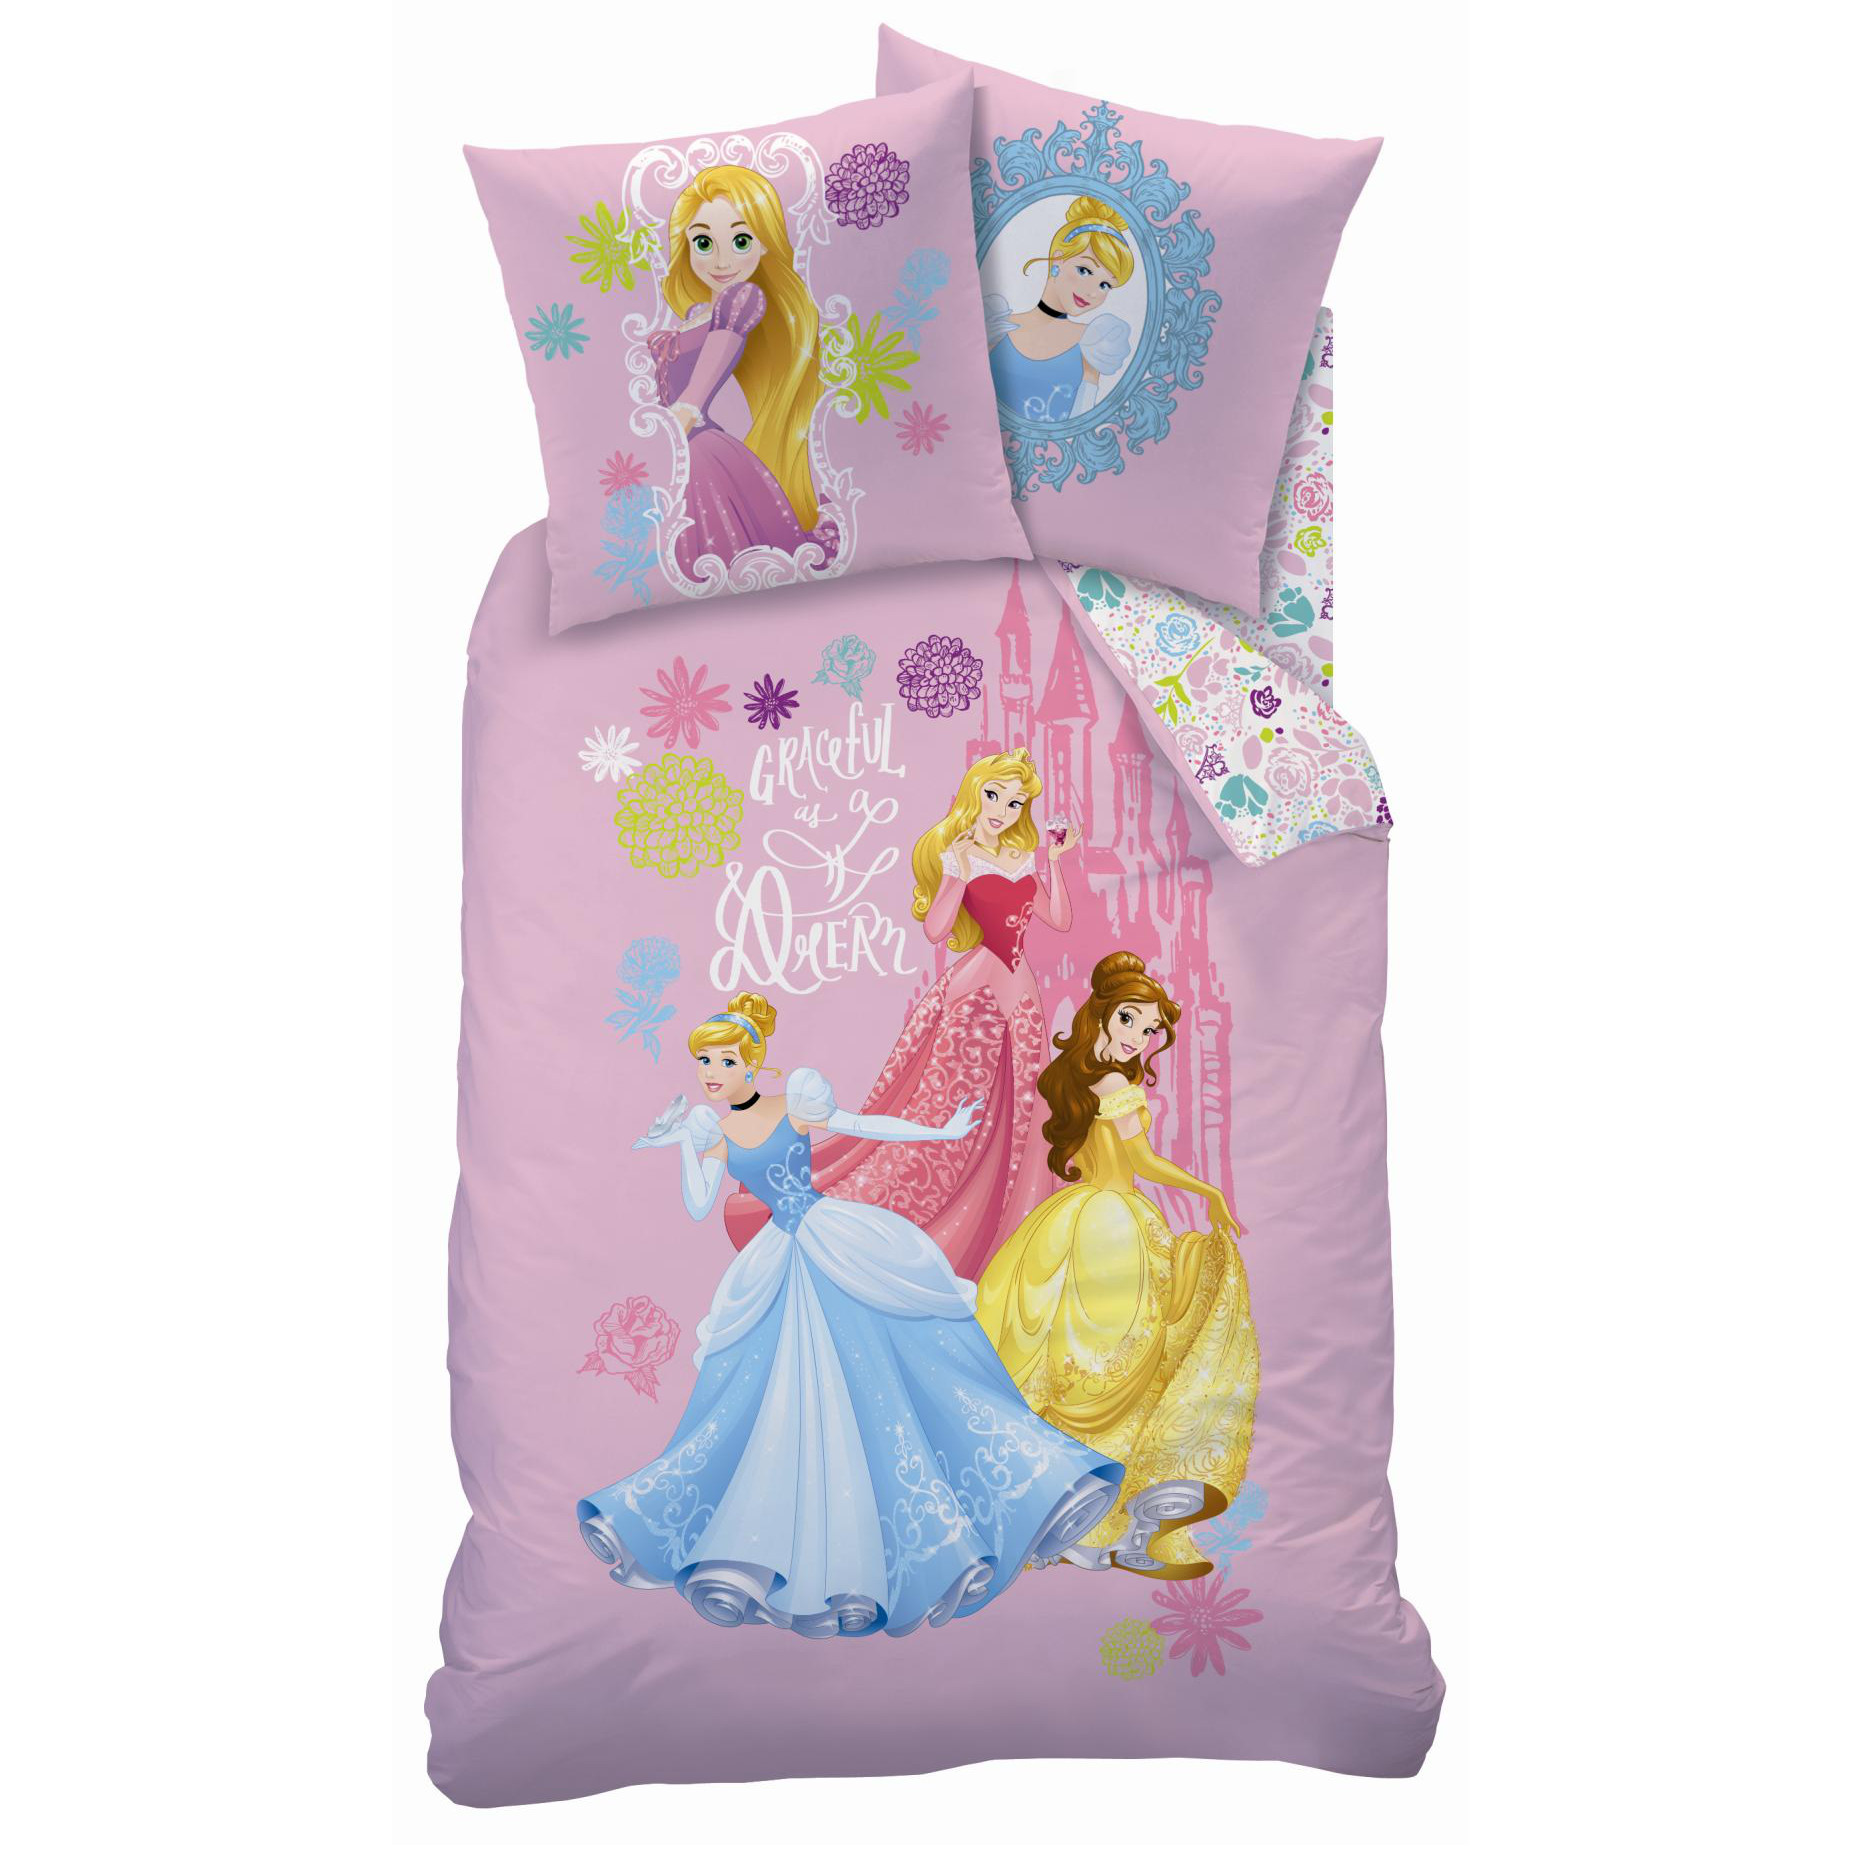 disney princesse parure de lit housse de couette 140 x 200 cm plc disney princesses. Black Bedroom Furniture Sets. Home Design Ideas